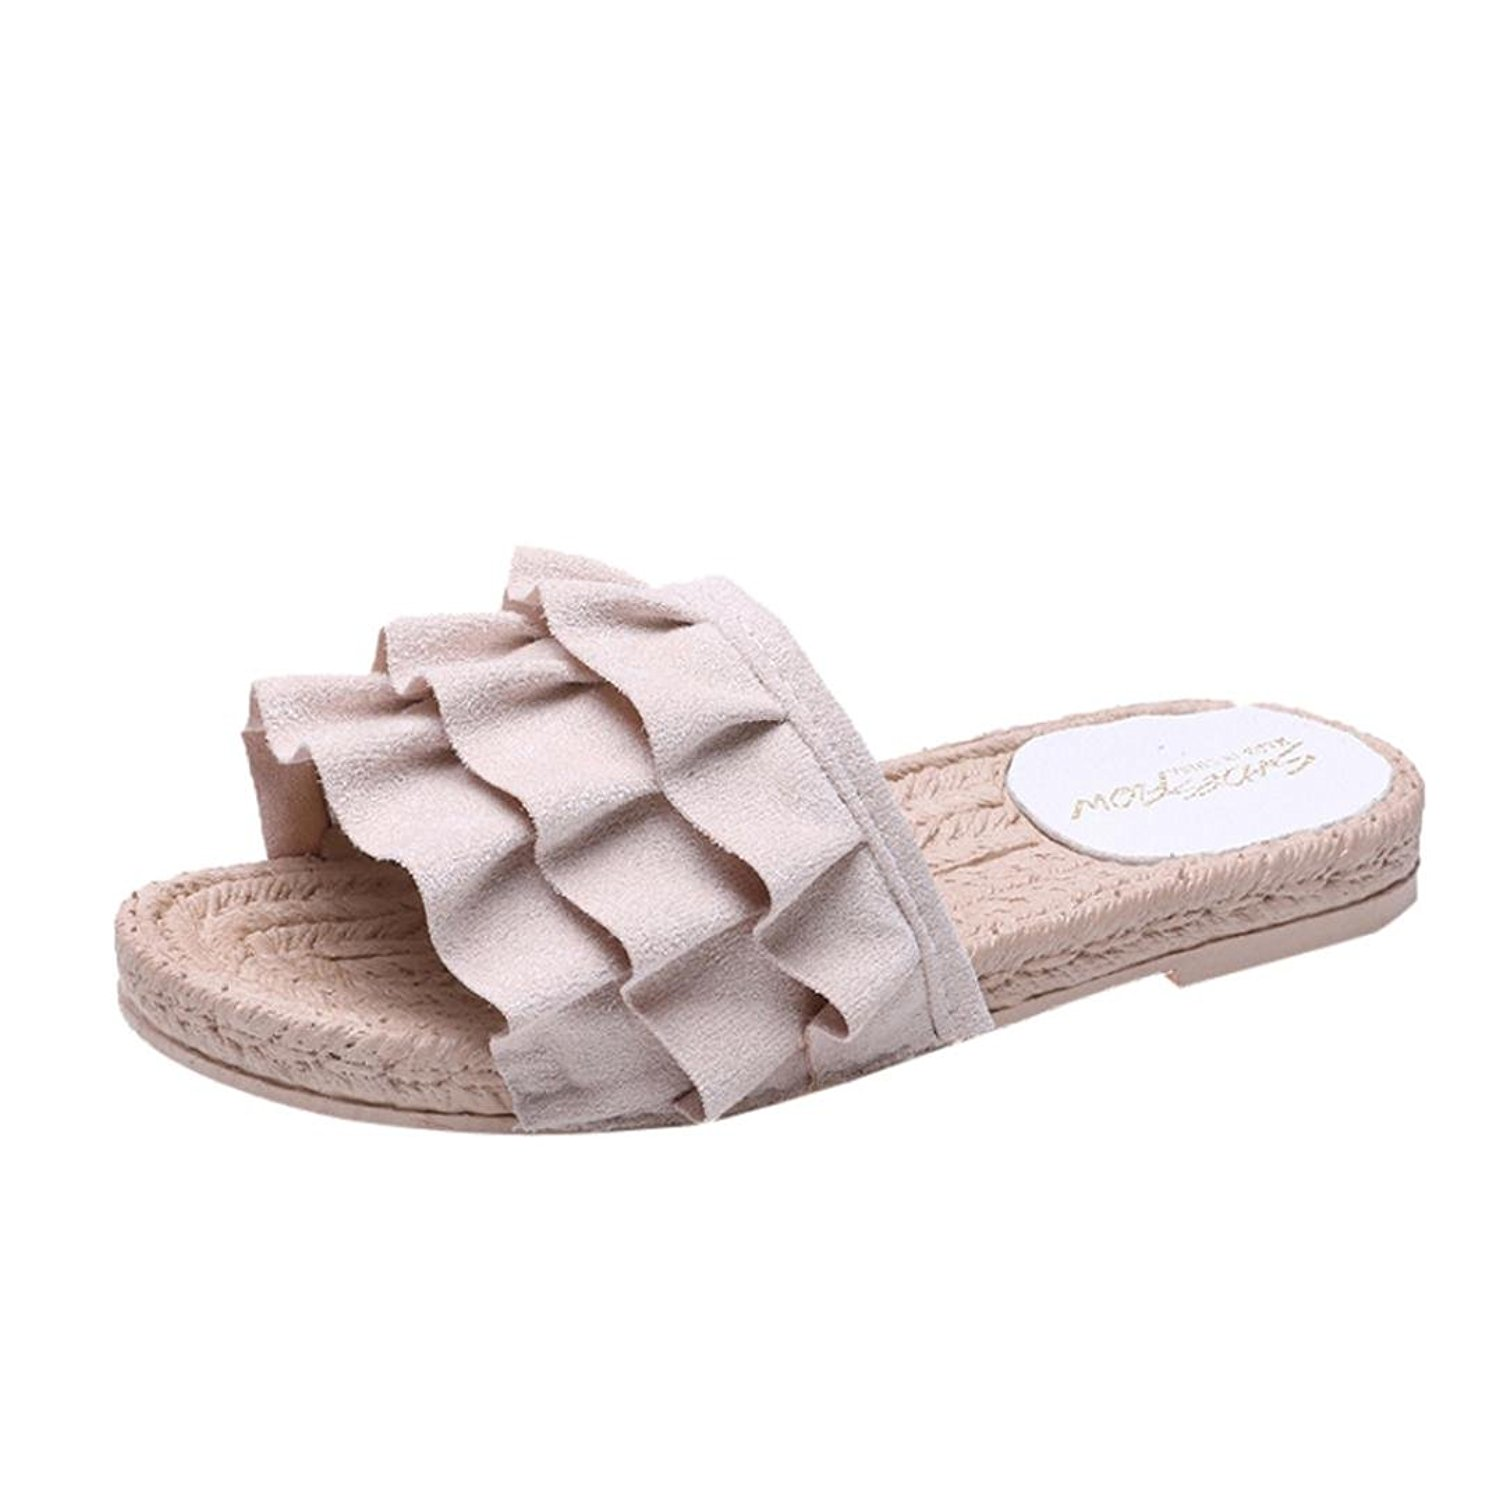 10d58cbc9 Get Quotations · ❤️Flats Sandals Women Lady Girl❤️Baomabao  Yellow